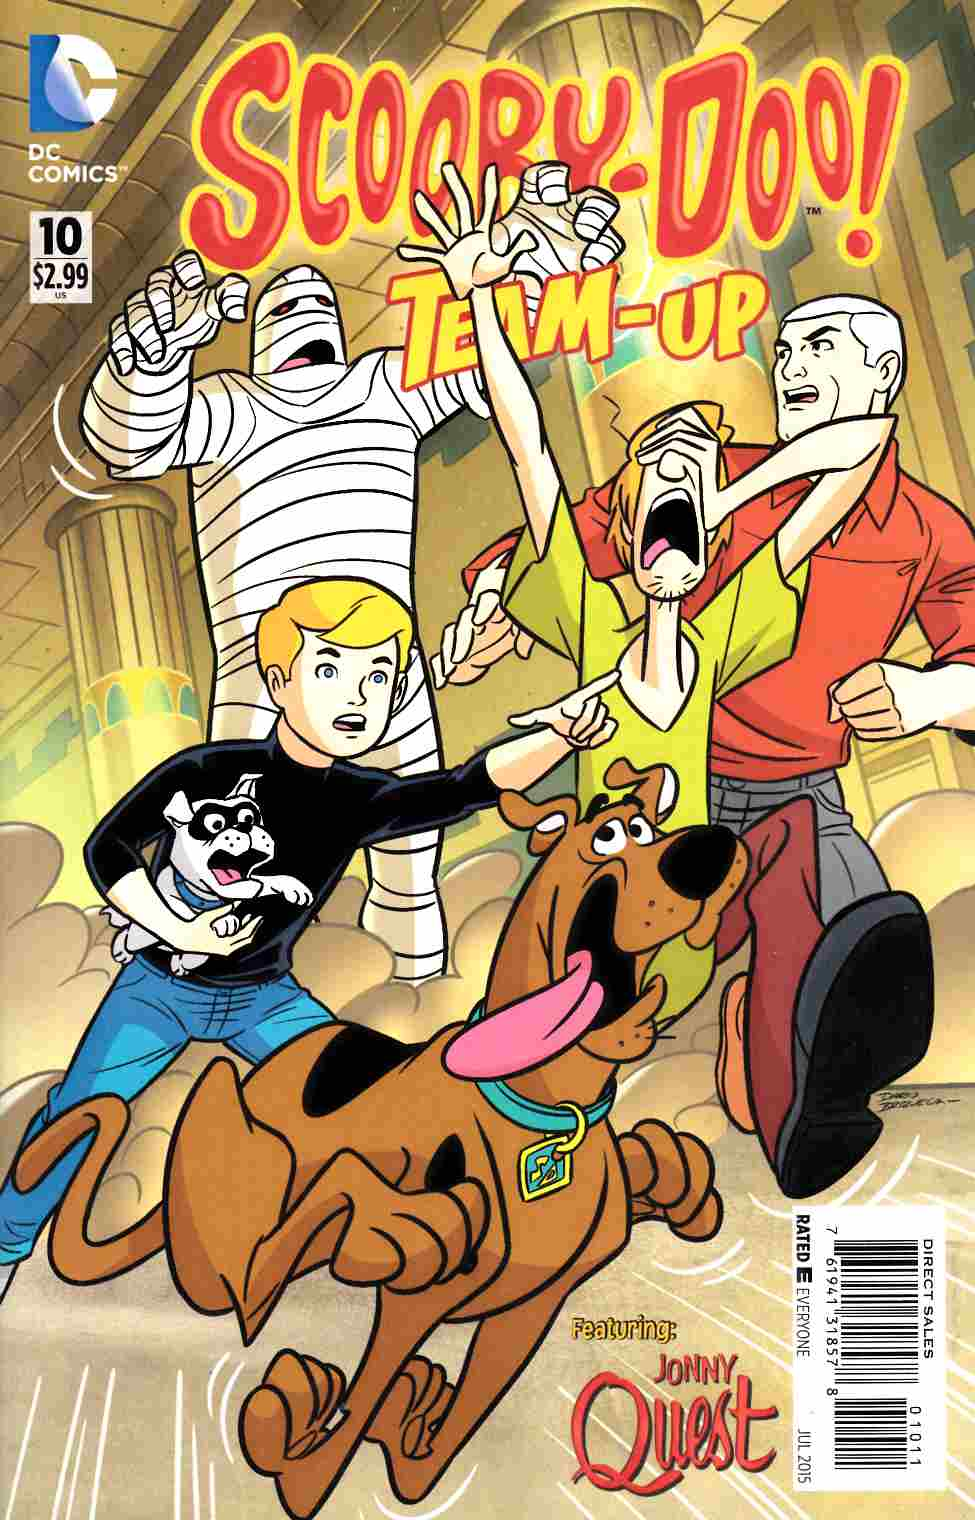 Scooby Doo Team Up #10 [DC Comic] THUMBNAIL